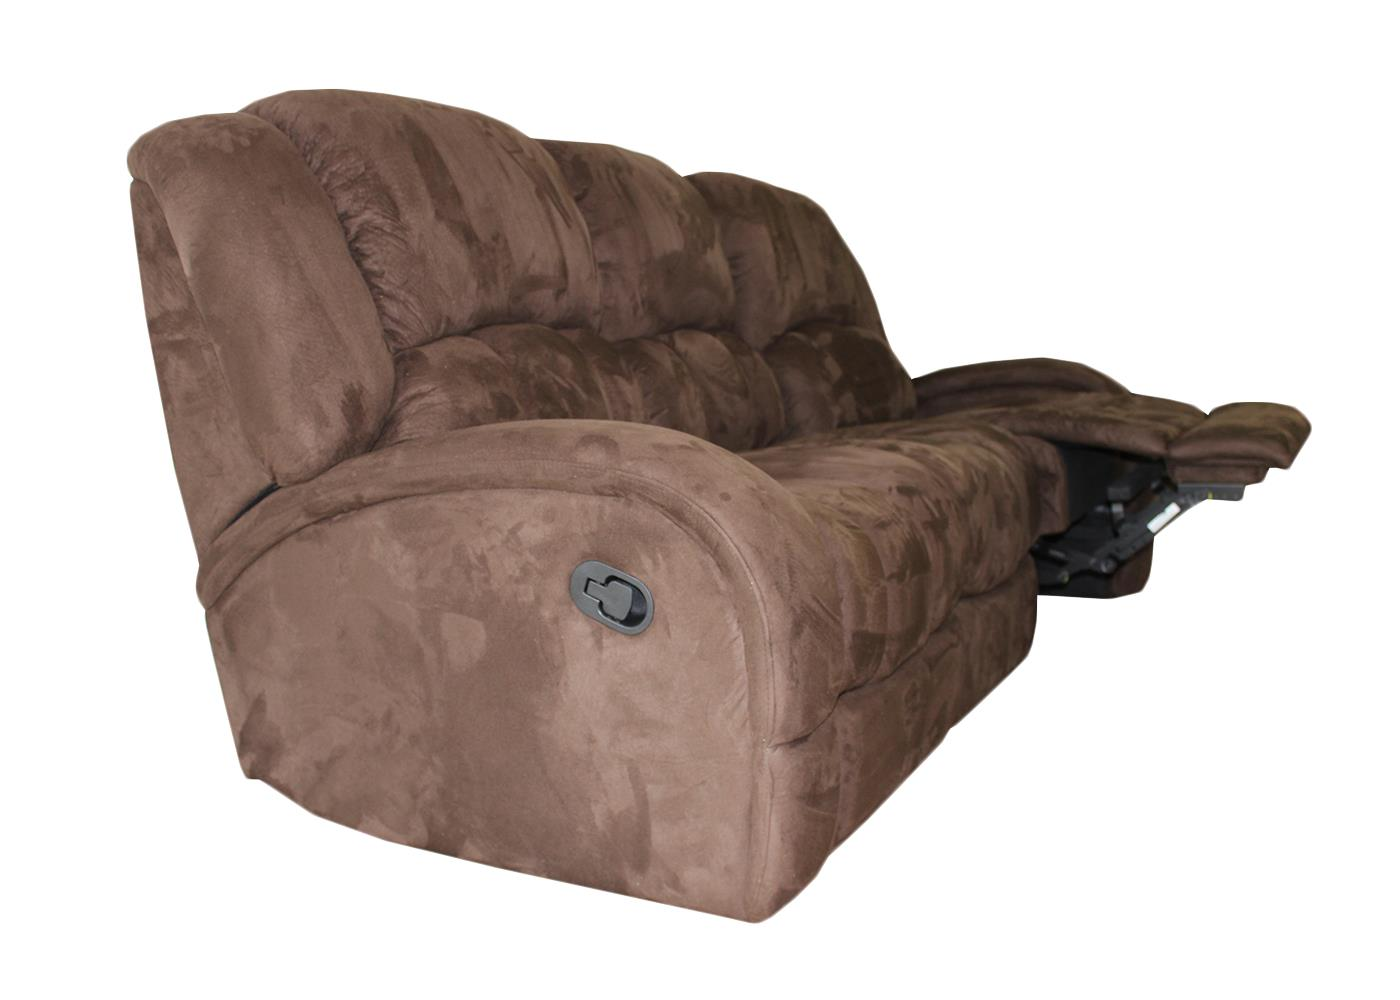 Statesman 3 Piece Fabric Recliner Lounge Suite